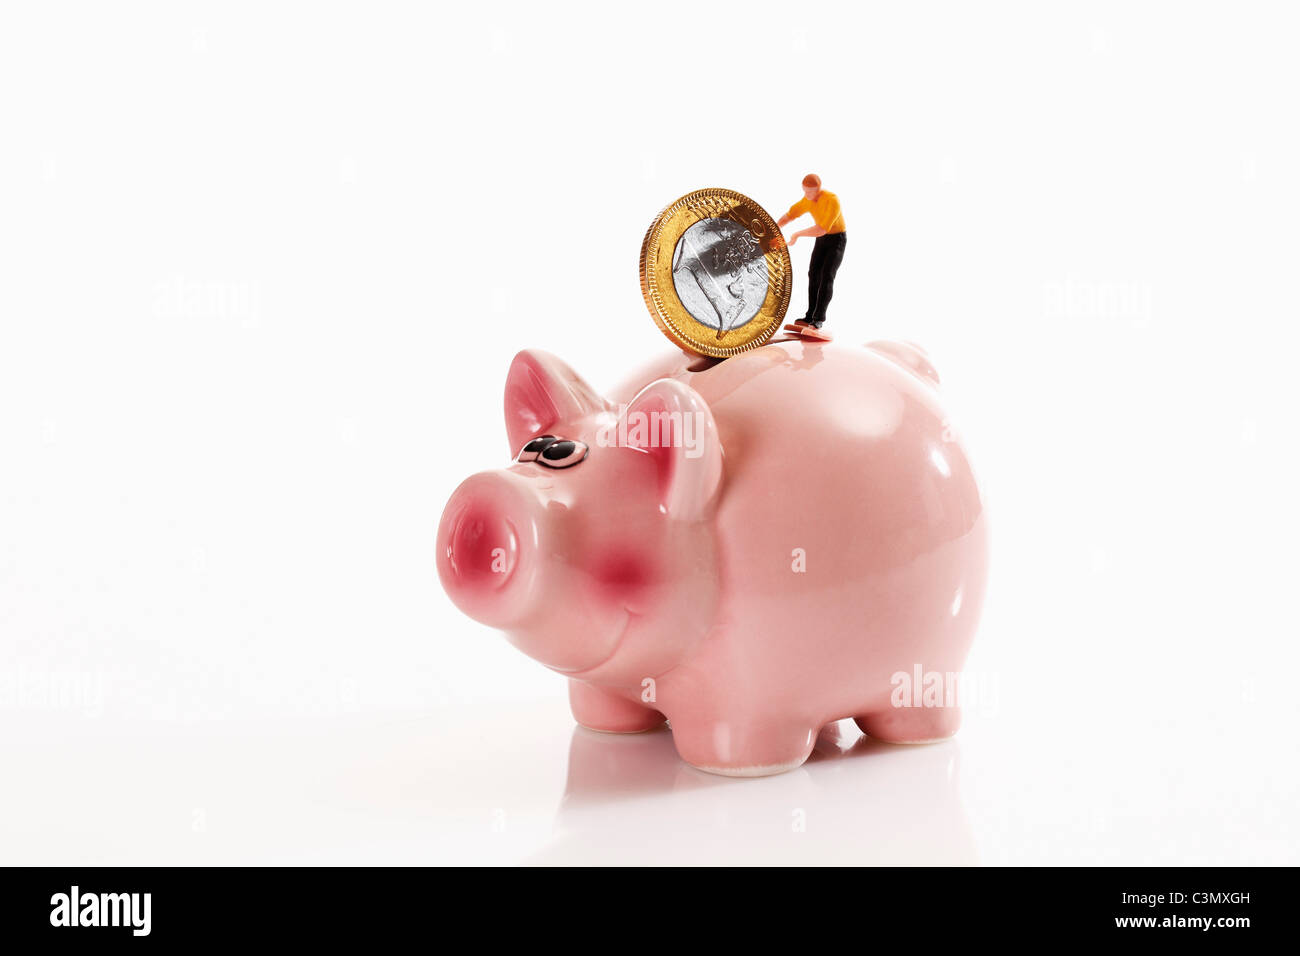 Figurine with 1 euro coin on piggy bank - Stock Image